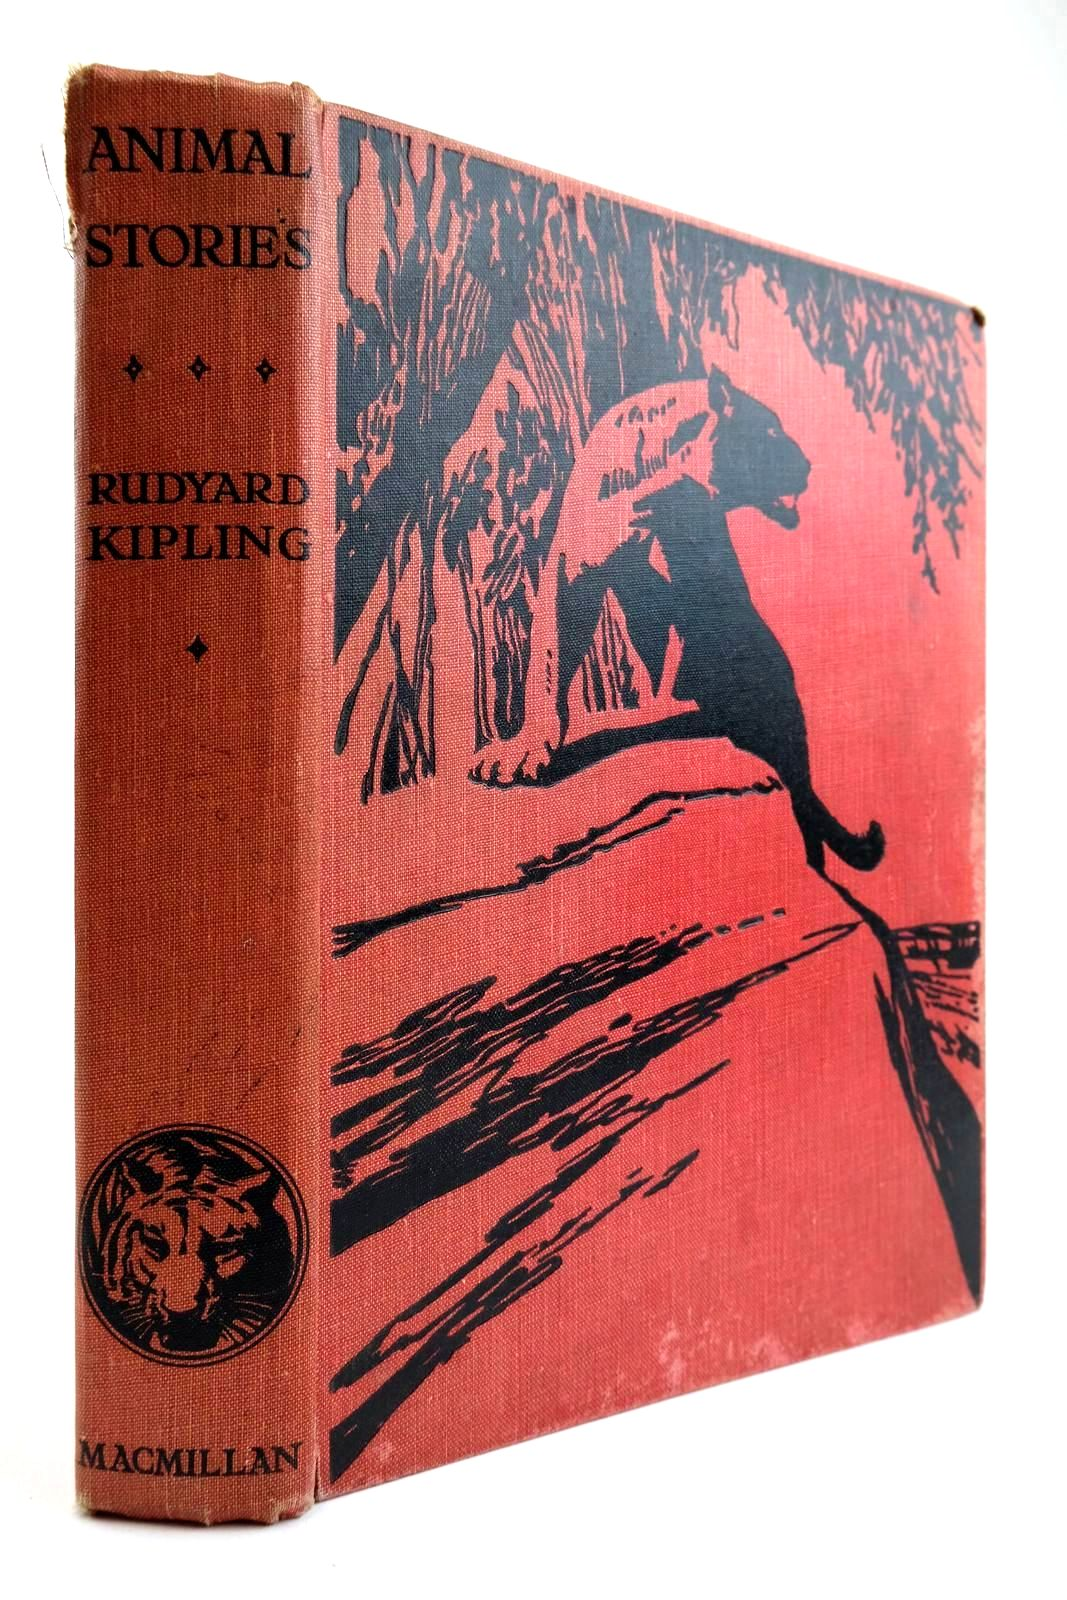 Photo of ANIMAL STORIES FROM RUDYARD KIPLING written by Kipling, Rudyard illustrated by Tresilian, Stuart published by Macmillan & Co. Ltd. (STOCK CODE: 2133972)  for sale by Stella & Rose's Books